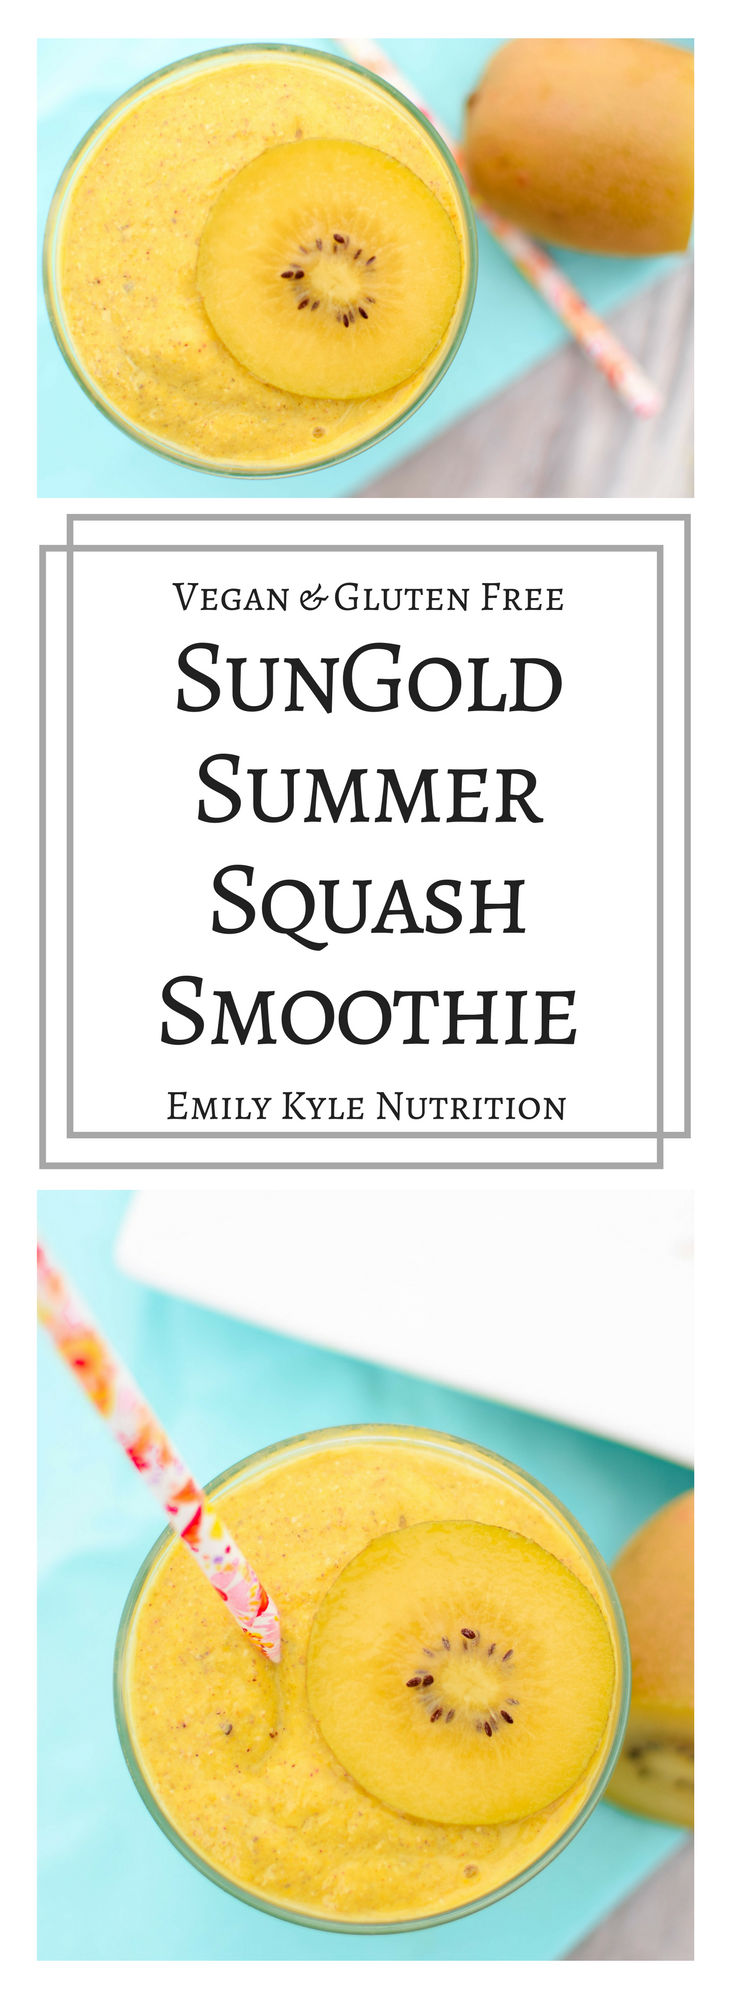 Use up those summer squash with this creamy and delicious naturally vegan and gluten free SunGold Summer Squash Smoothie #sponsored by Zespri KiwiFruit | @EmKyleNutrition @ZespriKiwiFruit